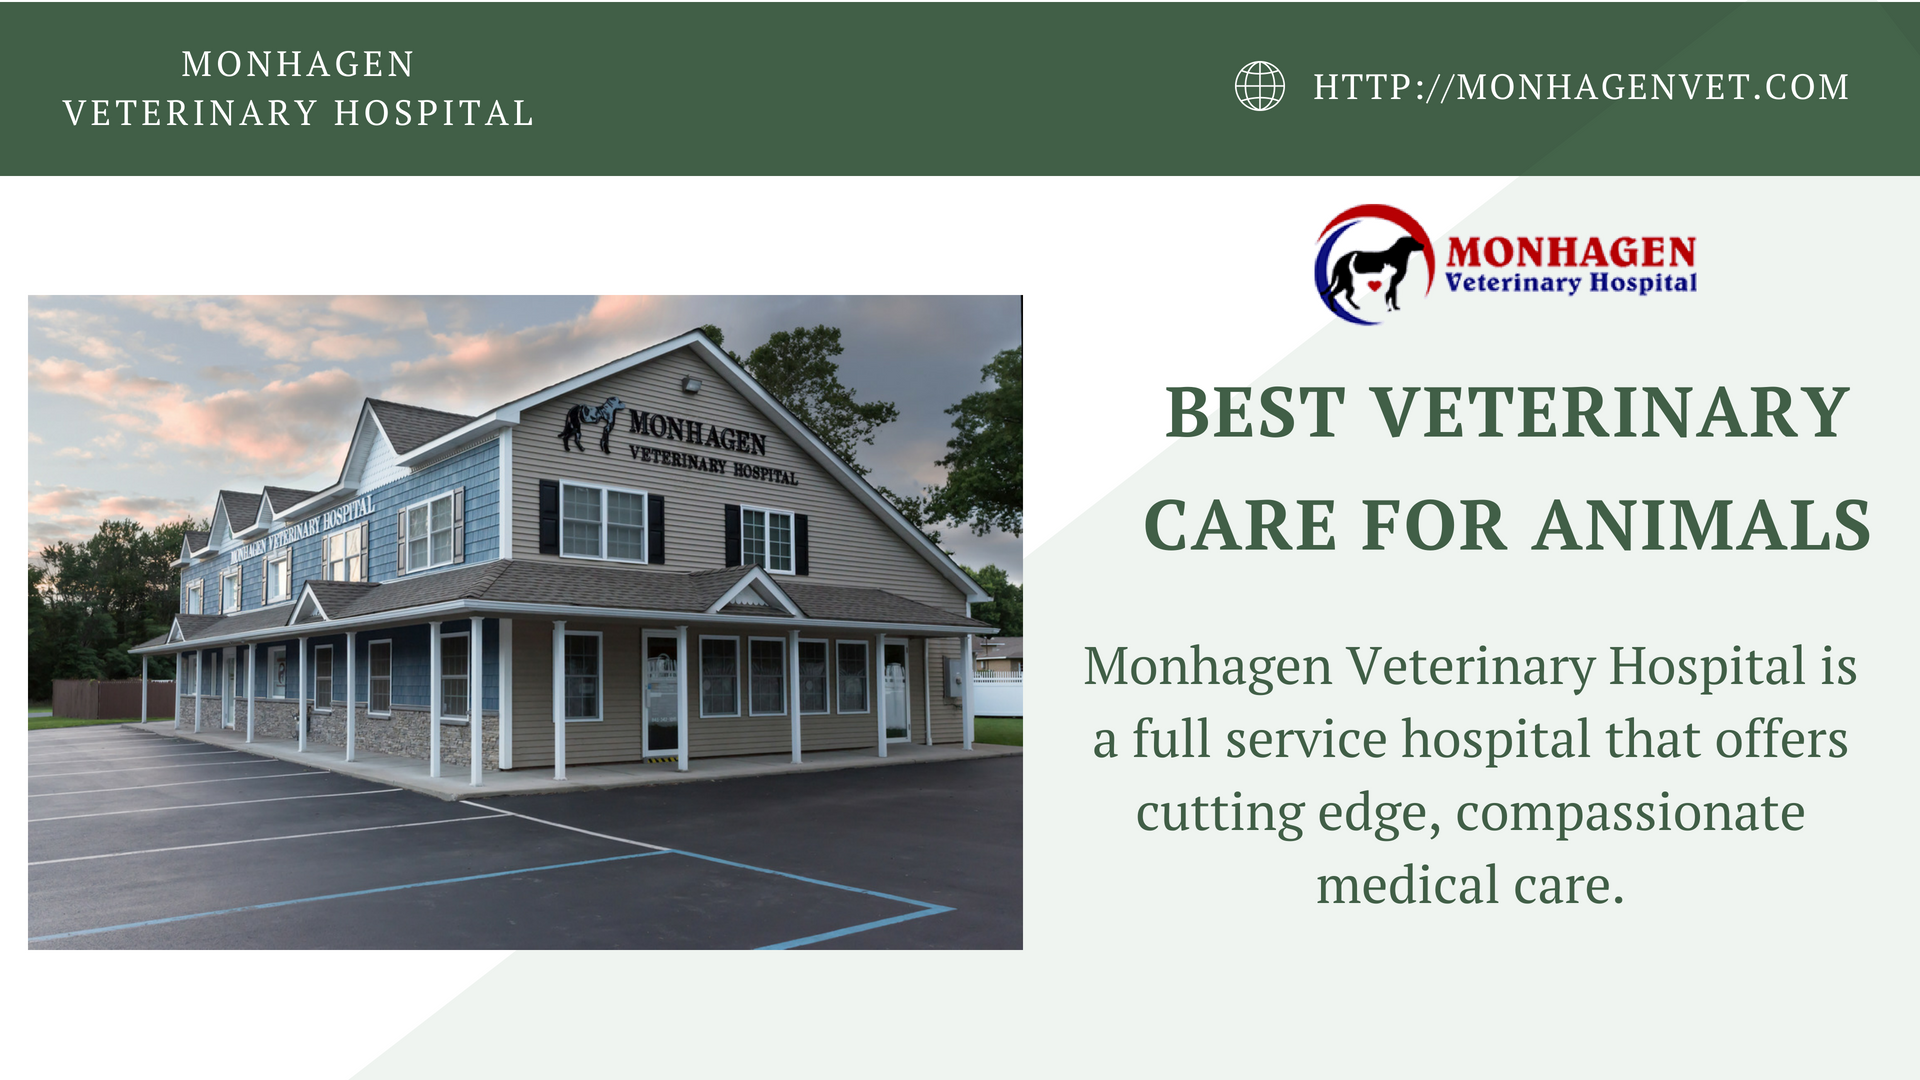 Monhagen Veterinary Hospital Is A Full Service Animal Hospital In